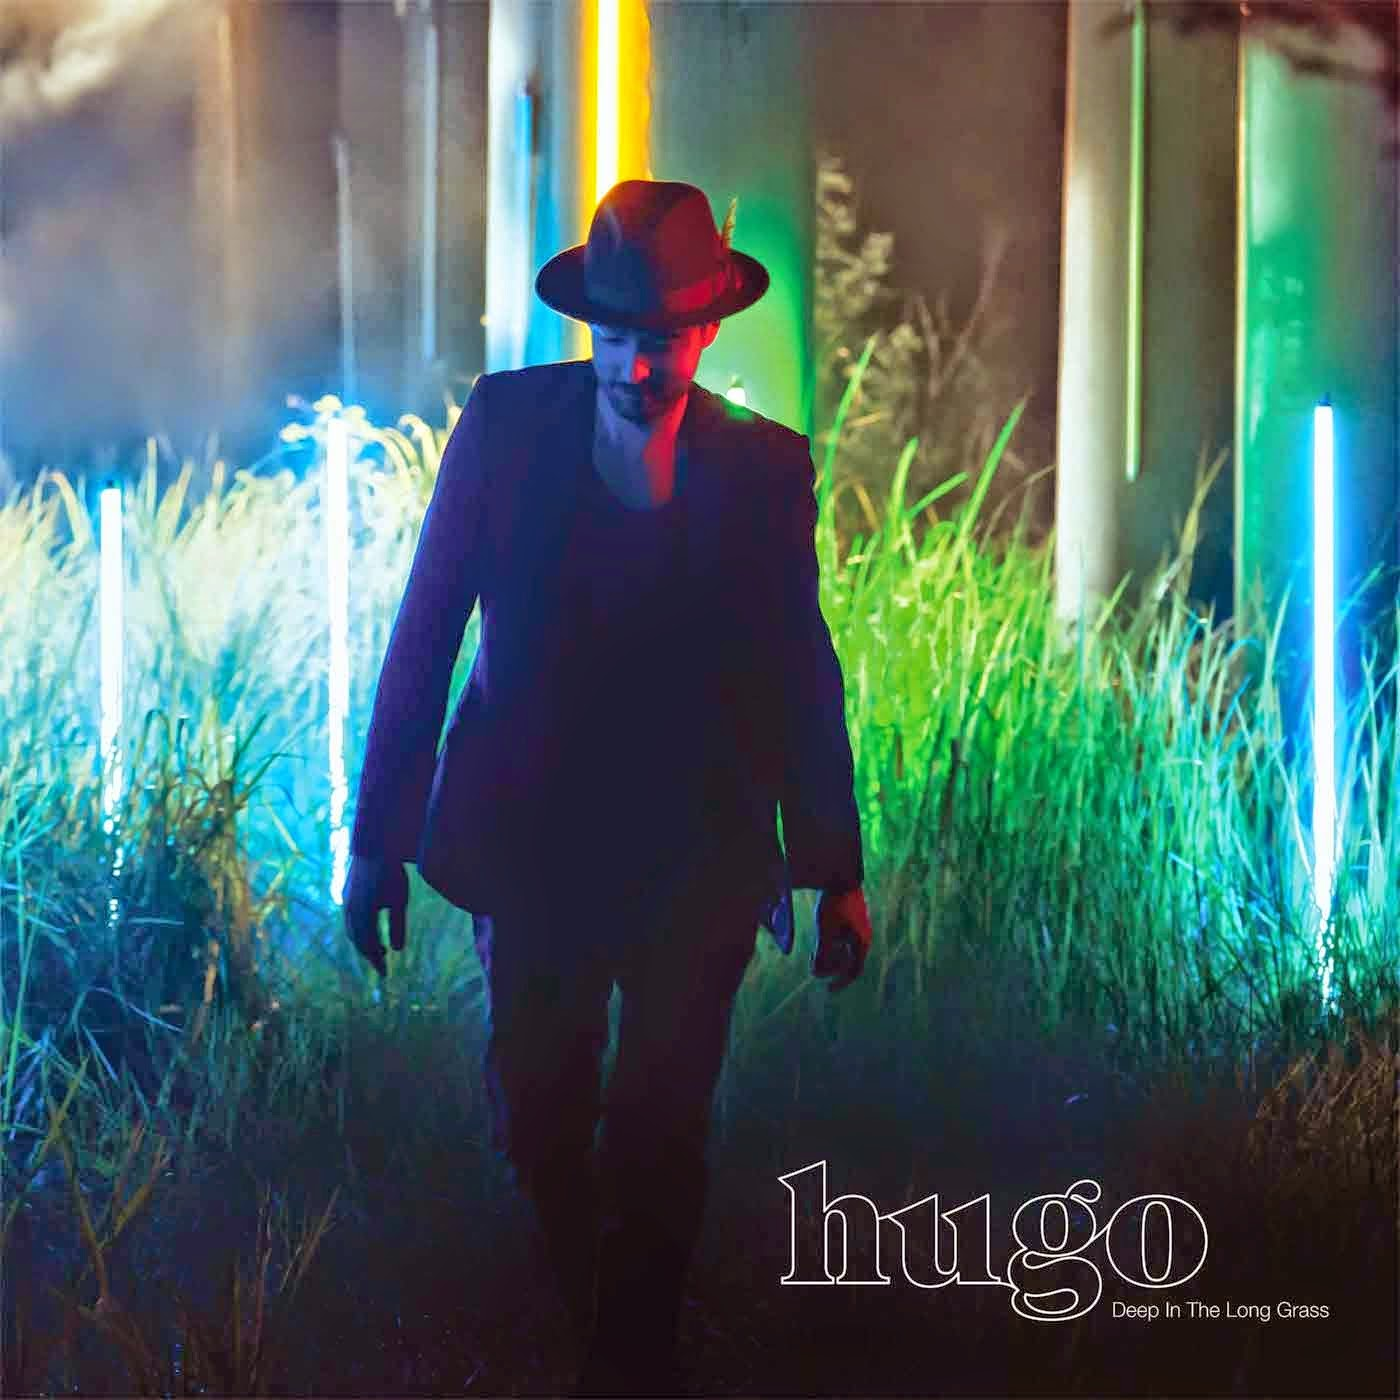 Download [Mp3]-[Hot New Full Album] อัลบั้มเต็ม Deep In The Long Grass – Hugo CBR@320Kbps [Solidfiles] 4shared By Pleng-mun.com